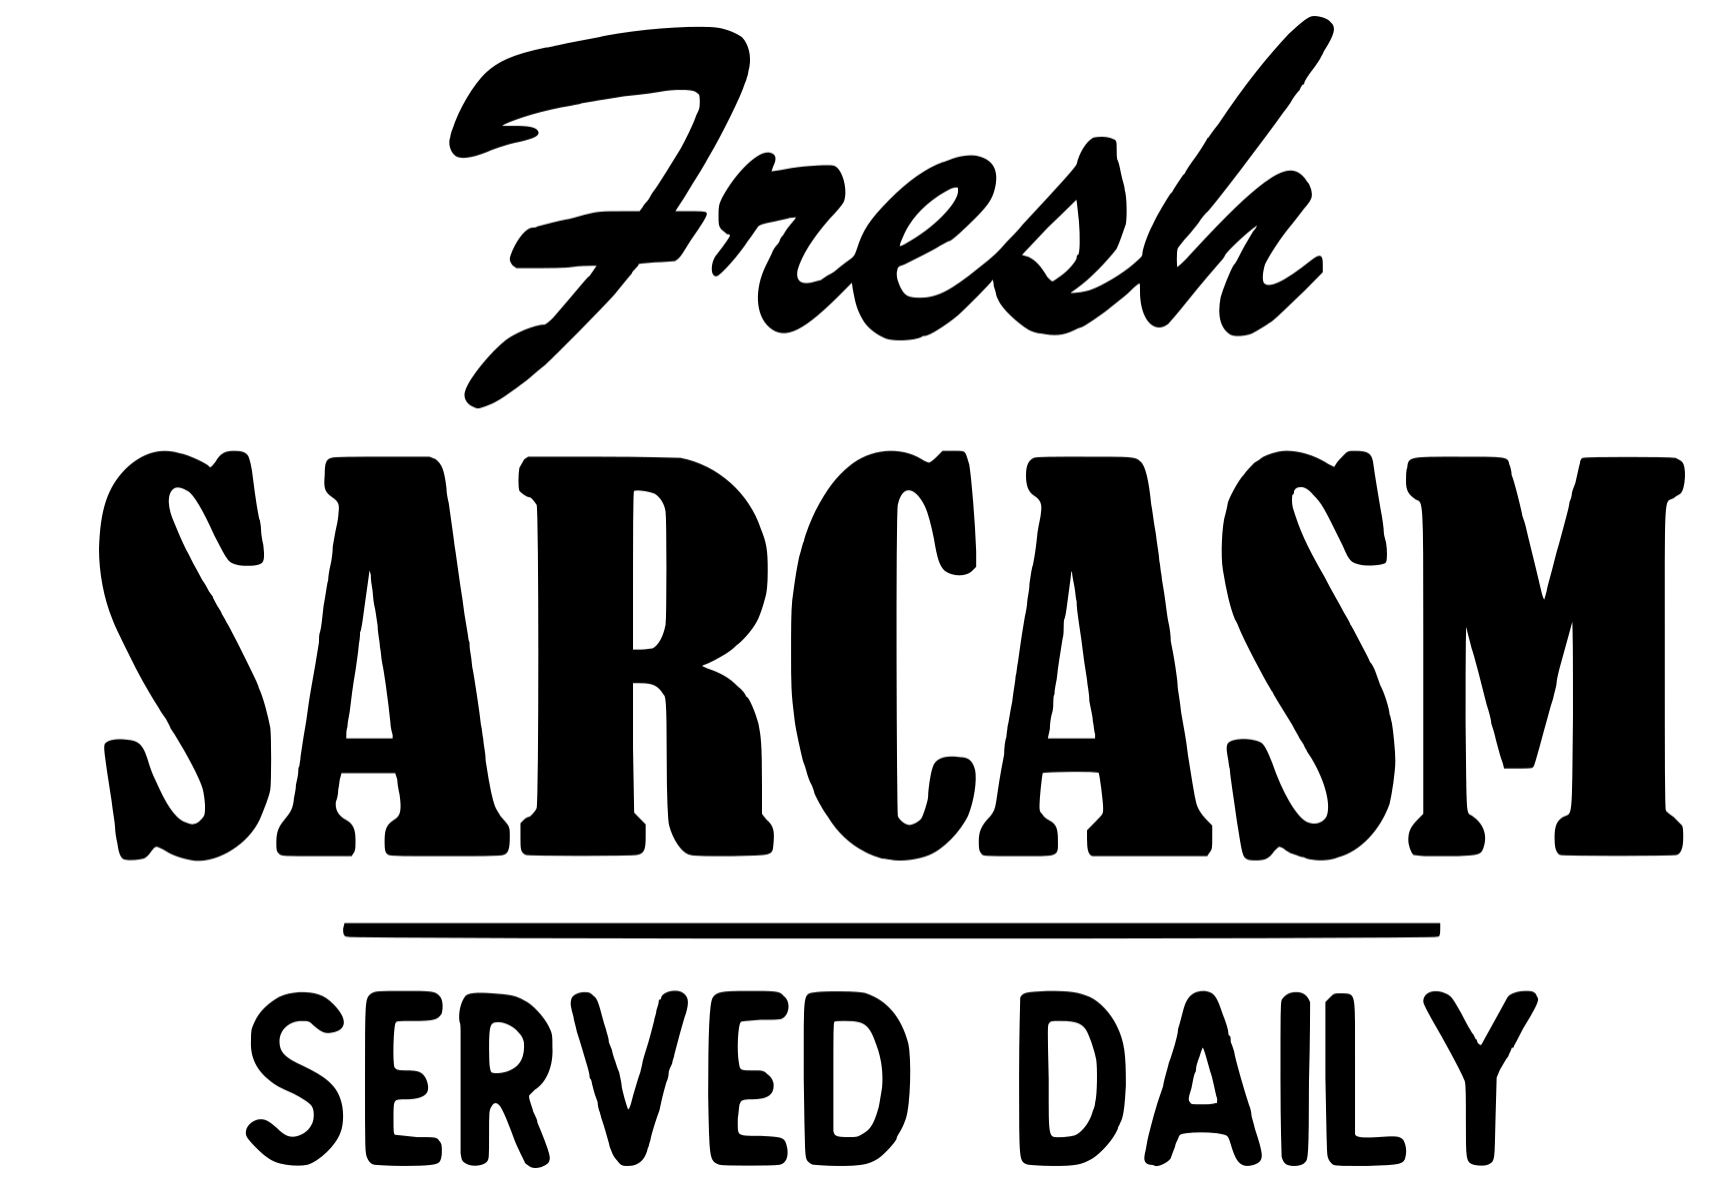 fresh sarcasm. served daily